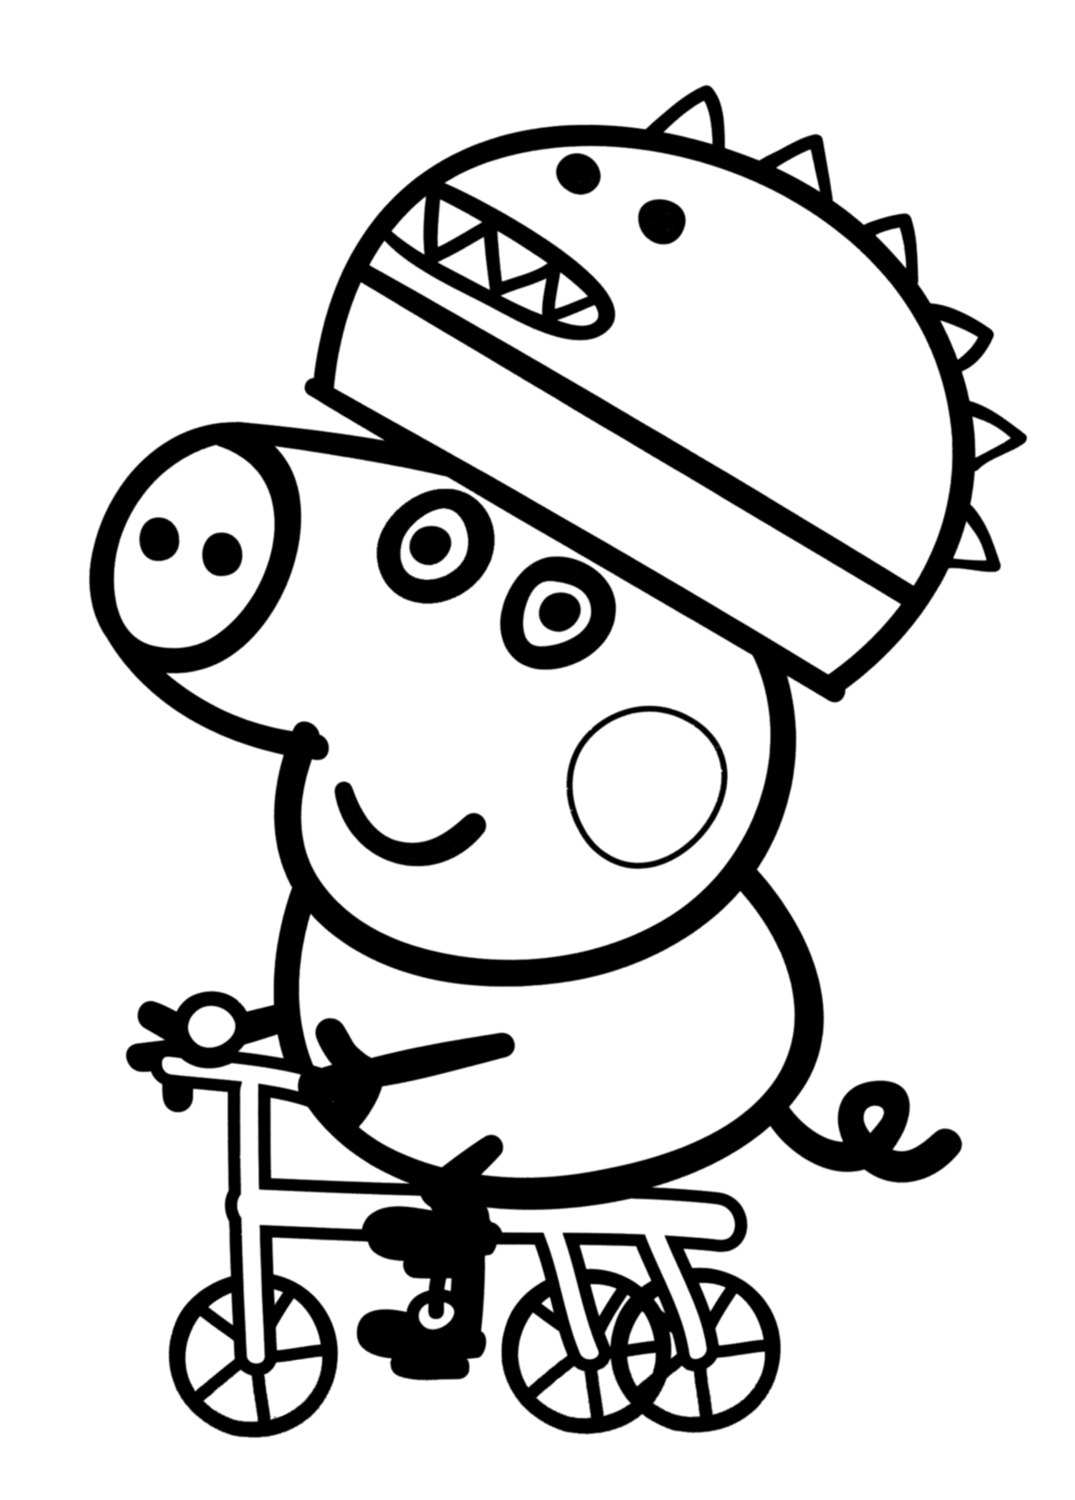 george pig colouring george pig coloring page george pig colouring